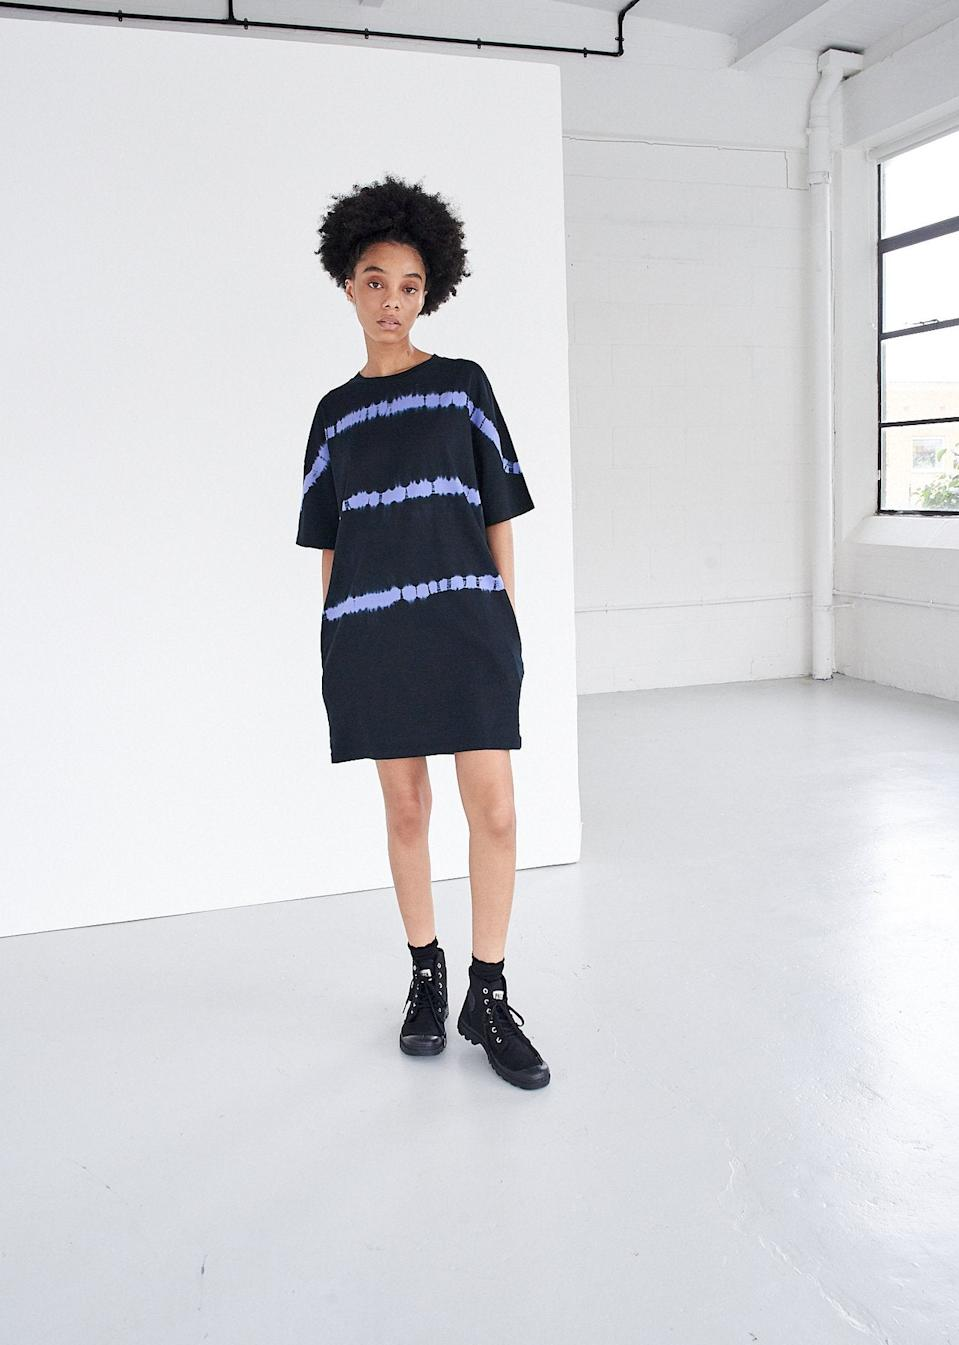 """<br><br><strong>Ninety Percent</strong> Organic Cotton Tie-Dye Striped Oversized T-Shirt Dress, $, available at <a href=""""https://go.skimresources.com/?id=30283X879131&url=https%3A%2F%2Fninetypercent.com%2Fcollections%2Fdresses%2Fproducts%2Forganic-cotton-tie-dye-striped-oversized-t-shirt-dress"""" rel=""""nofollow noopener"""" target=""""_blank"""" data-ylk=""""slk:Ninety Percent"""" class=""""link rapid-noclick-resp"""">Ninety Percent</a>"""